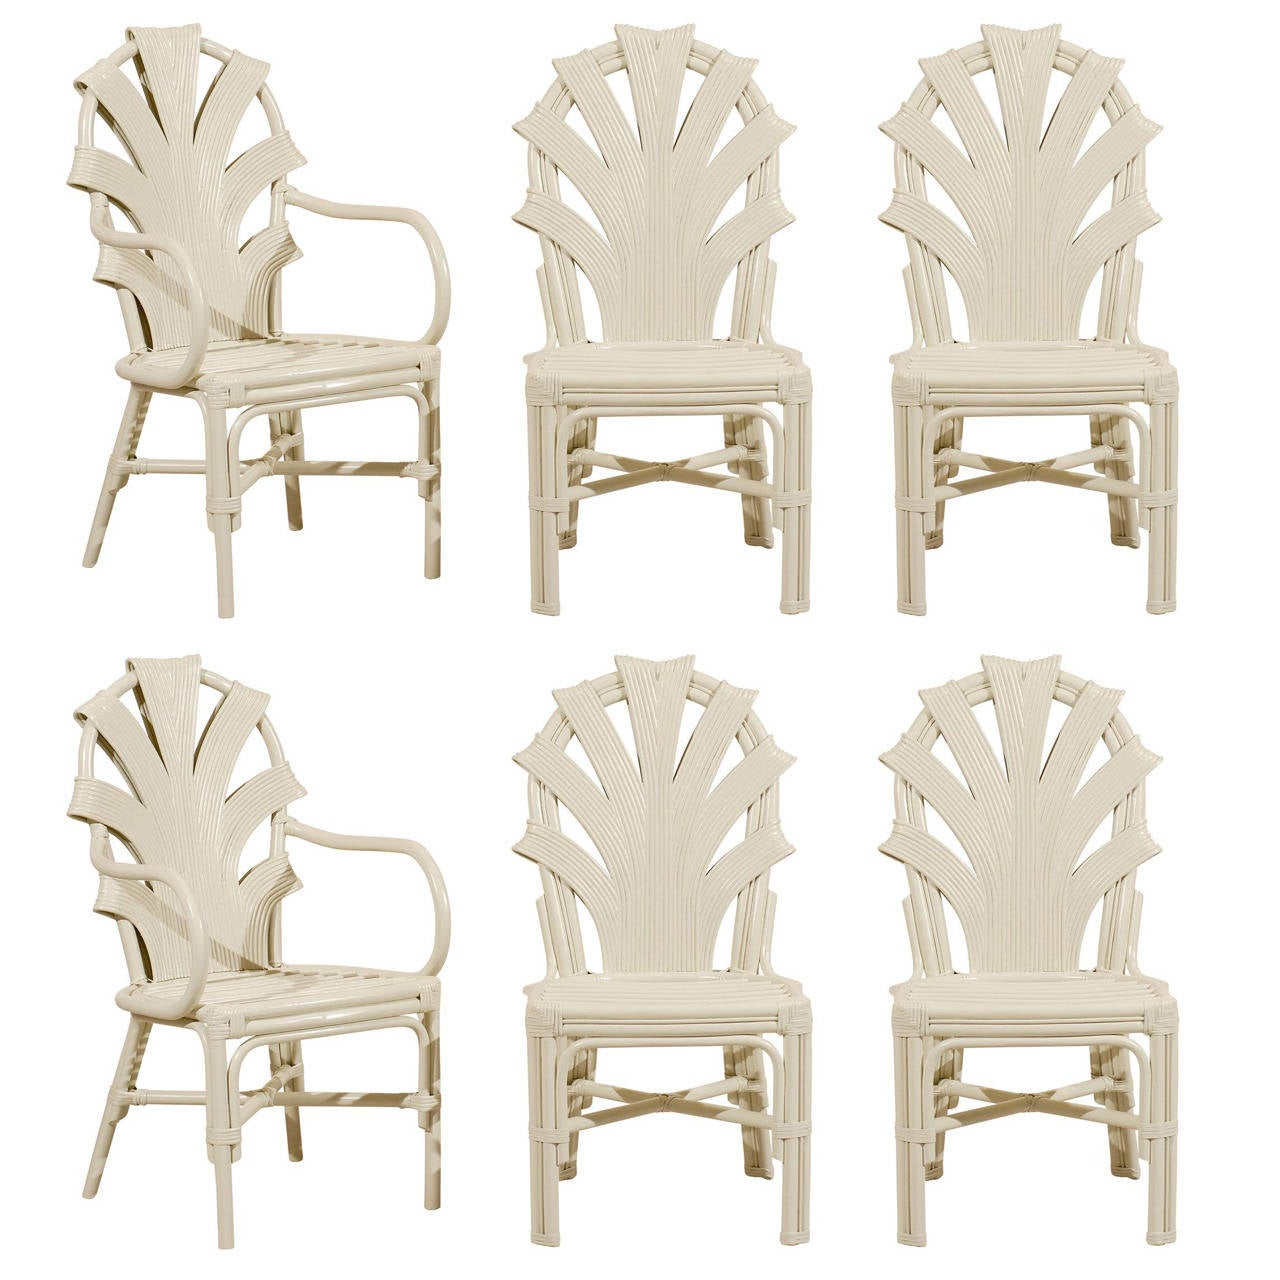 Exceptional set of six vintage rattan dining chairs in for Cream dining room chairs sale